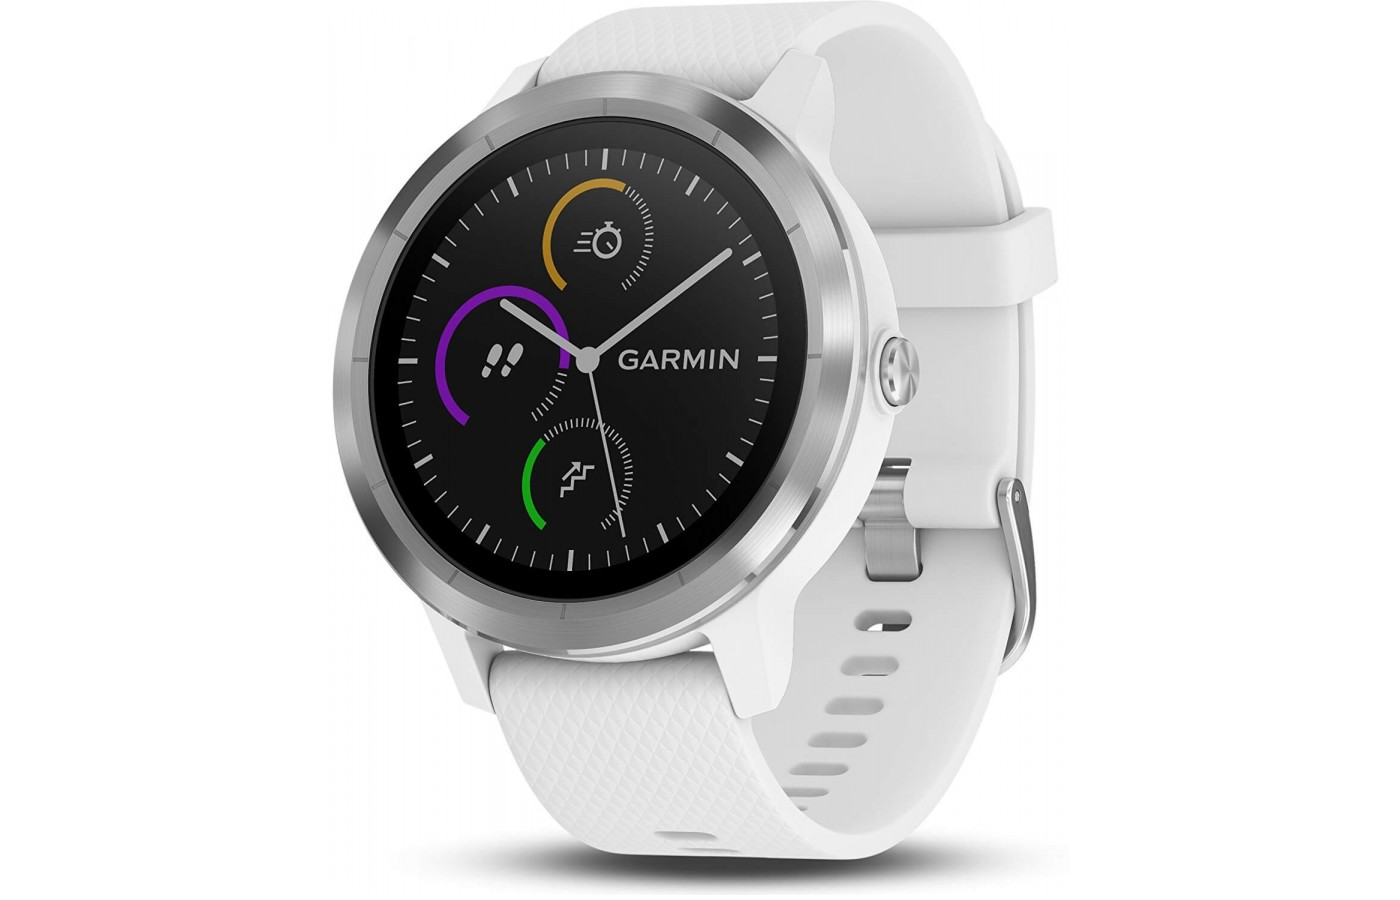 The Garmin Vivoactive 3 comes in three styles